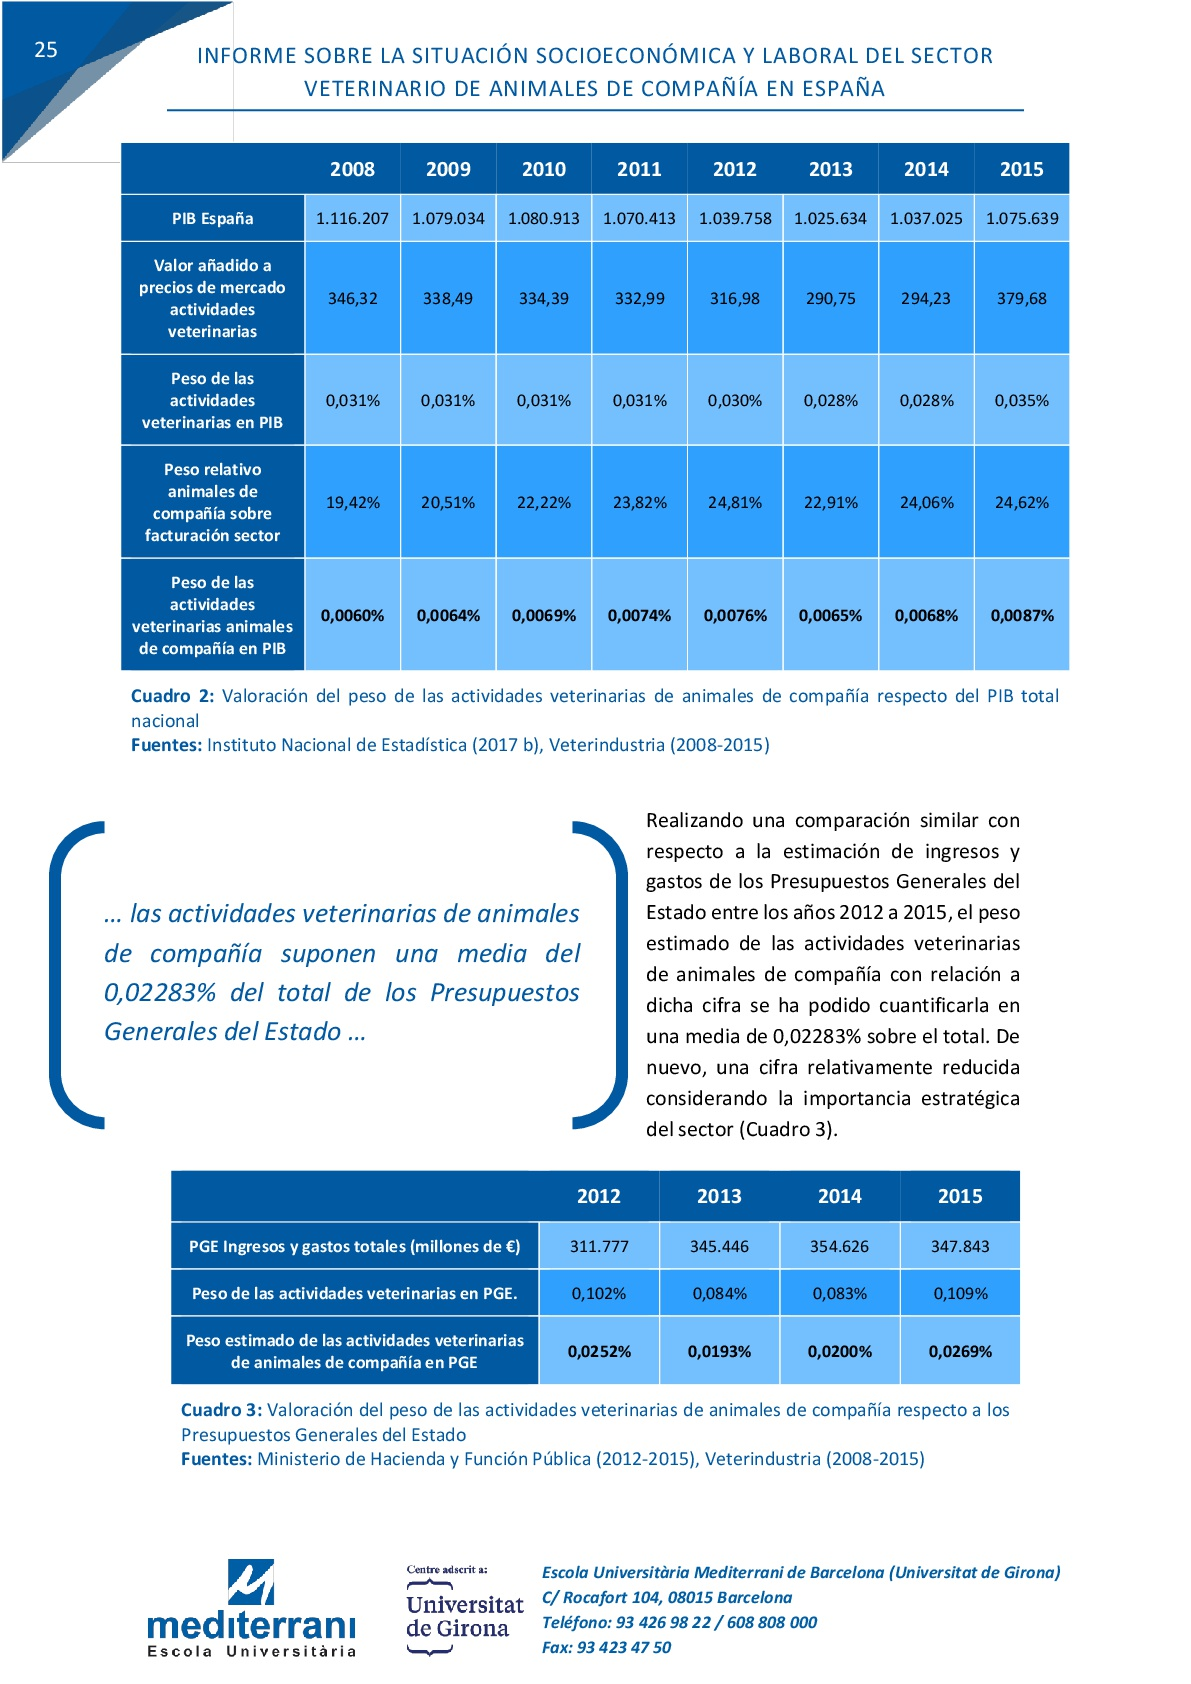 Informe-Veterinario-2017-+-informe-legal-2015-(3)-030